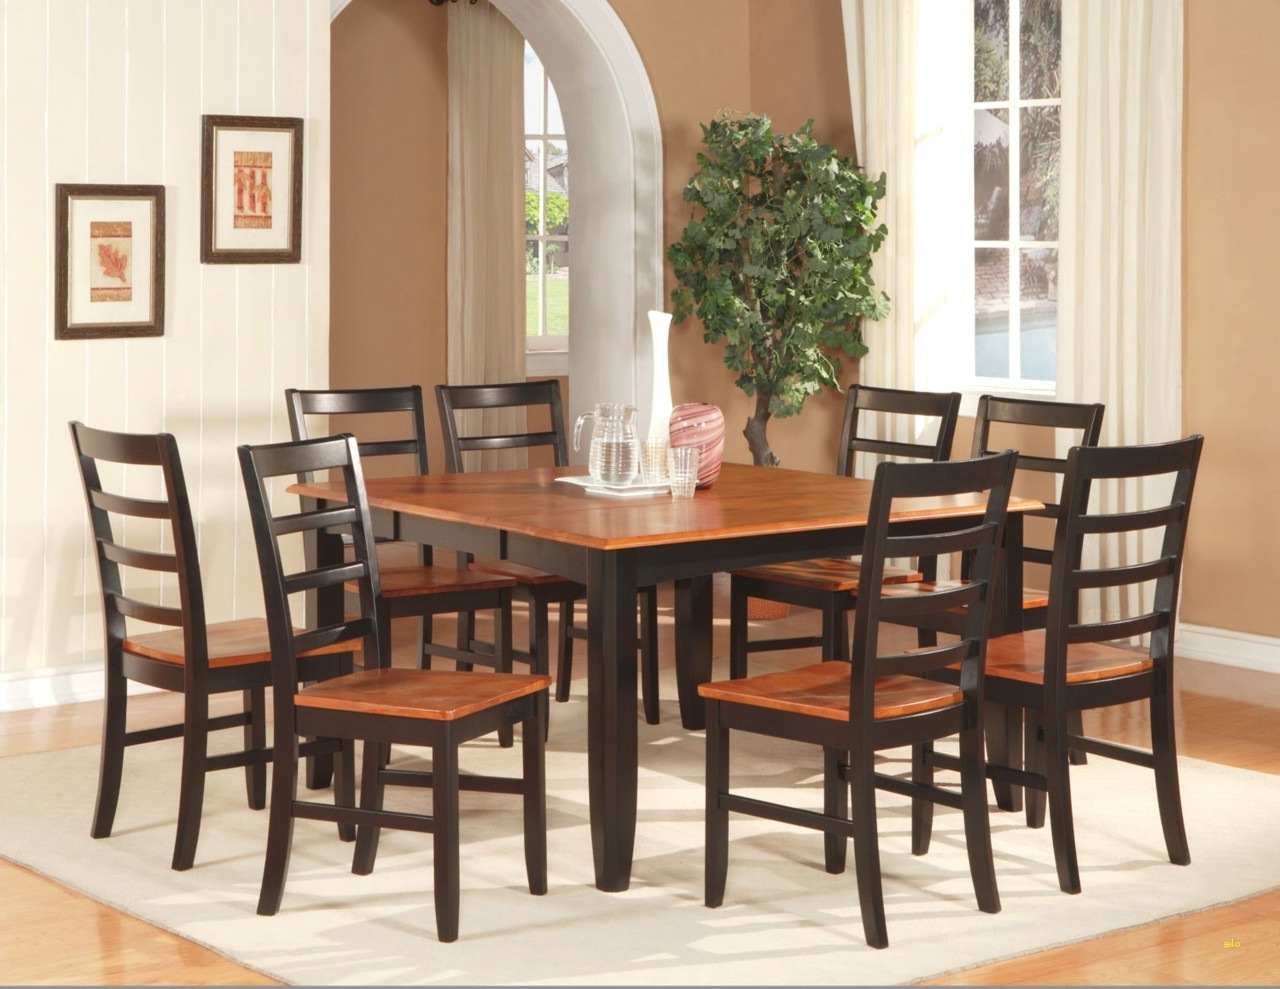 Awesome Dining Room Table Sets 8 Chairs At Dining Room Table Plans In Most Recent Dining Tables Set For  (View 1 of 25)